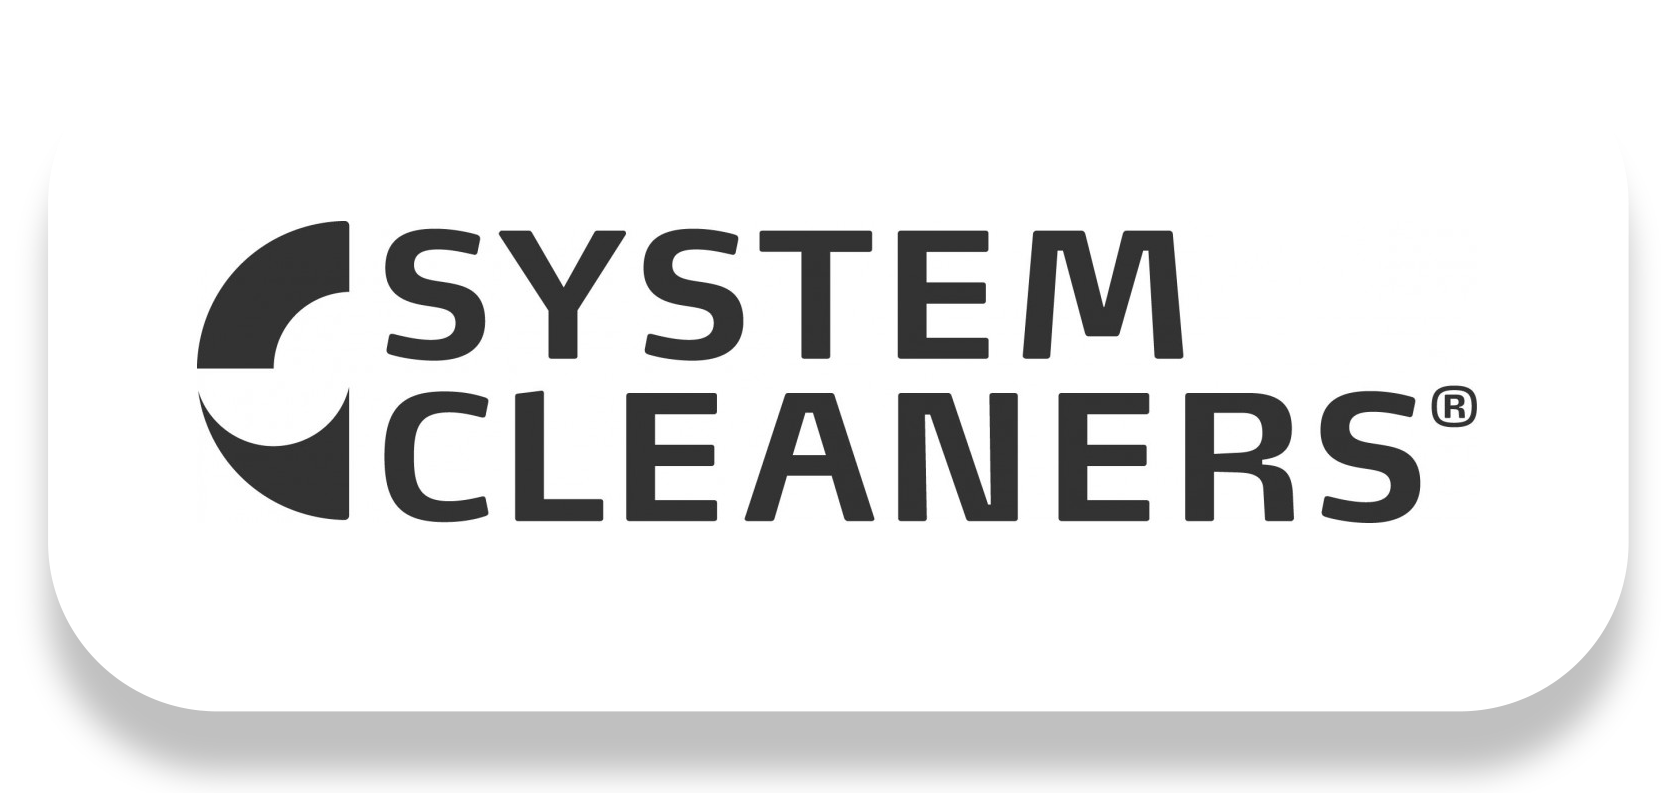 System Cleaners logo shadow